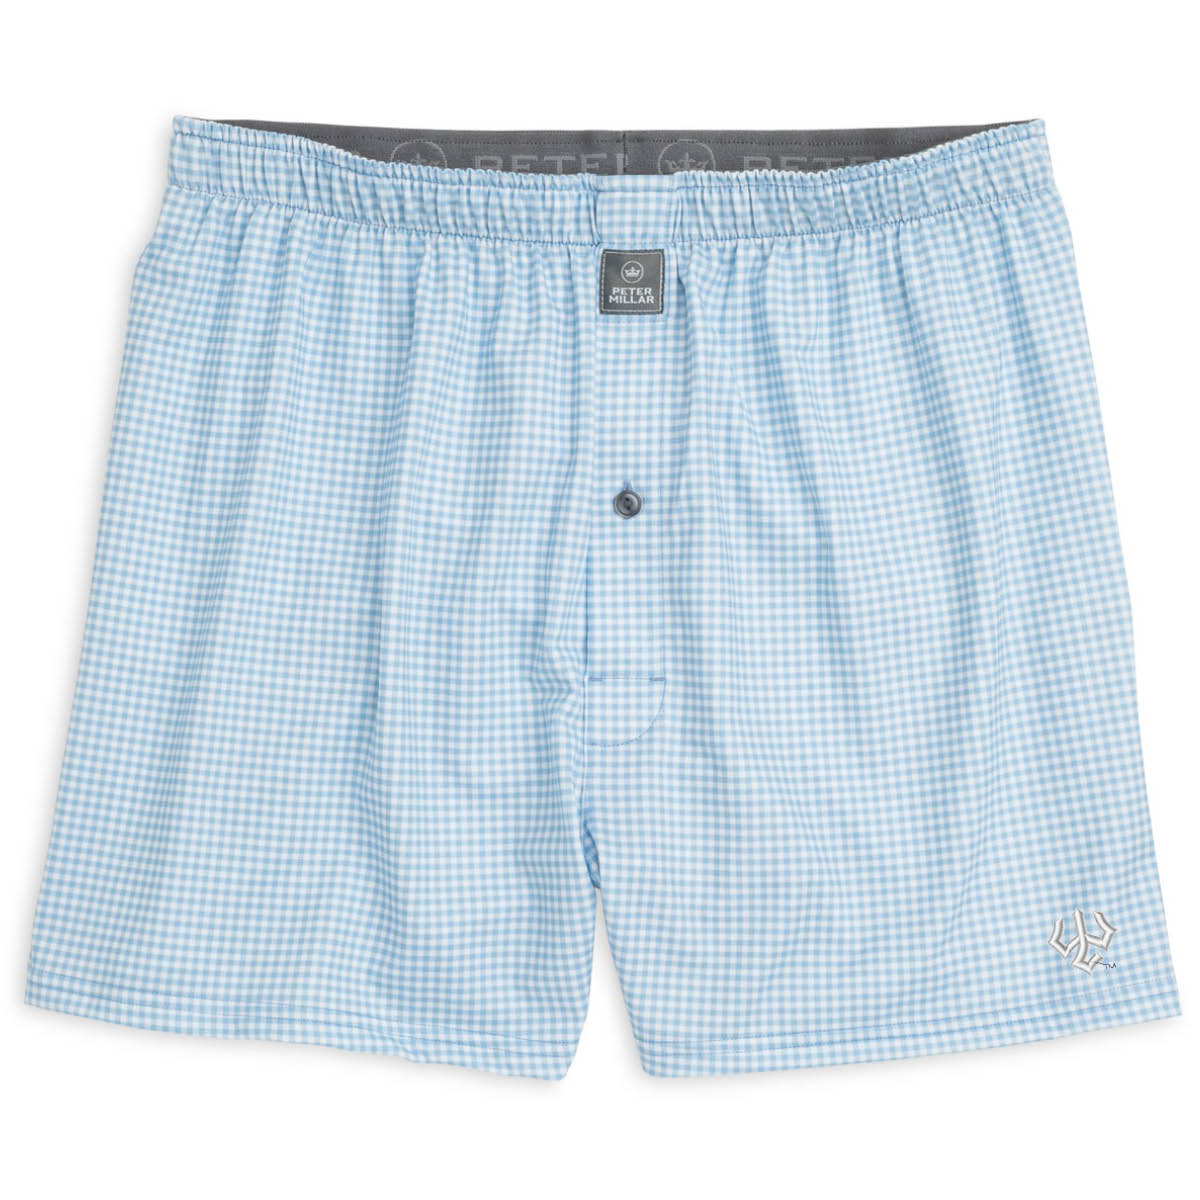 Peter Millar Gingham Check Stretch Jersey Boxer